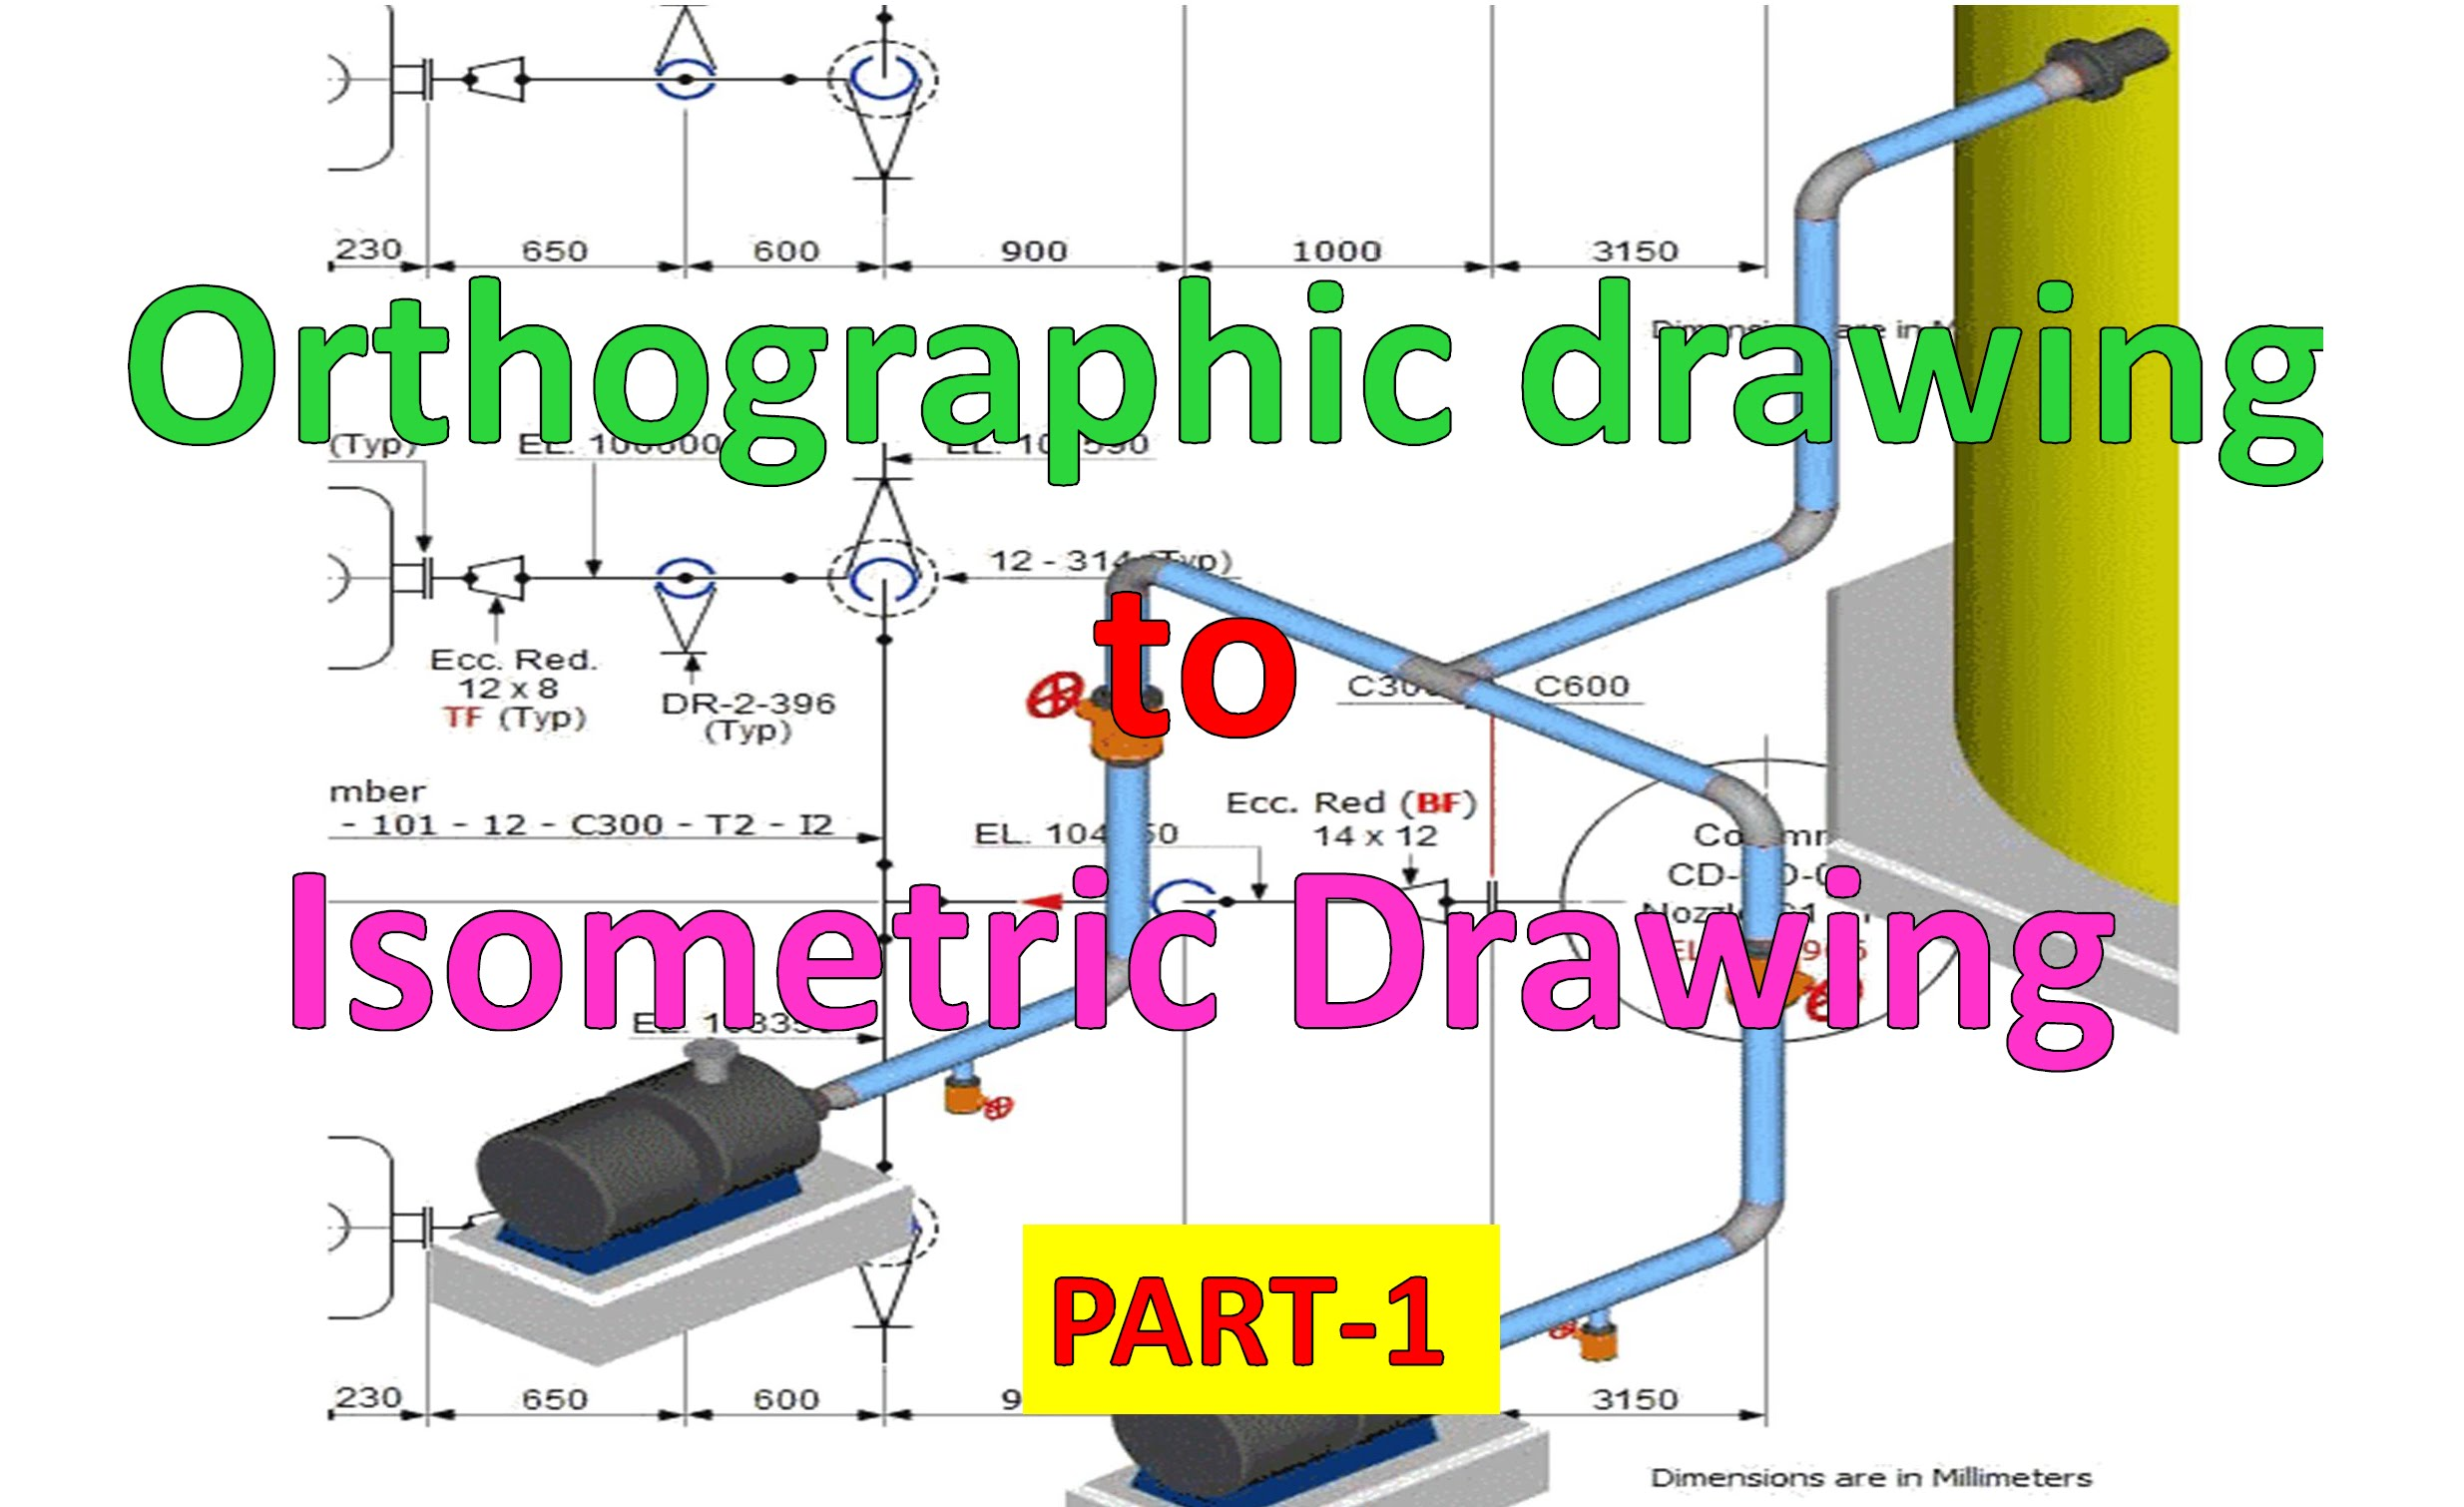 isometric piping diagram yamaha grizzly 660 carburetor pipe drawing at getdrawings free for